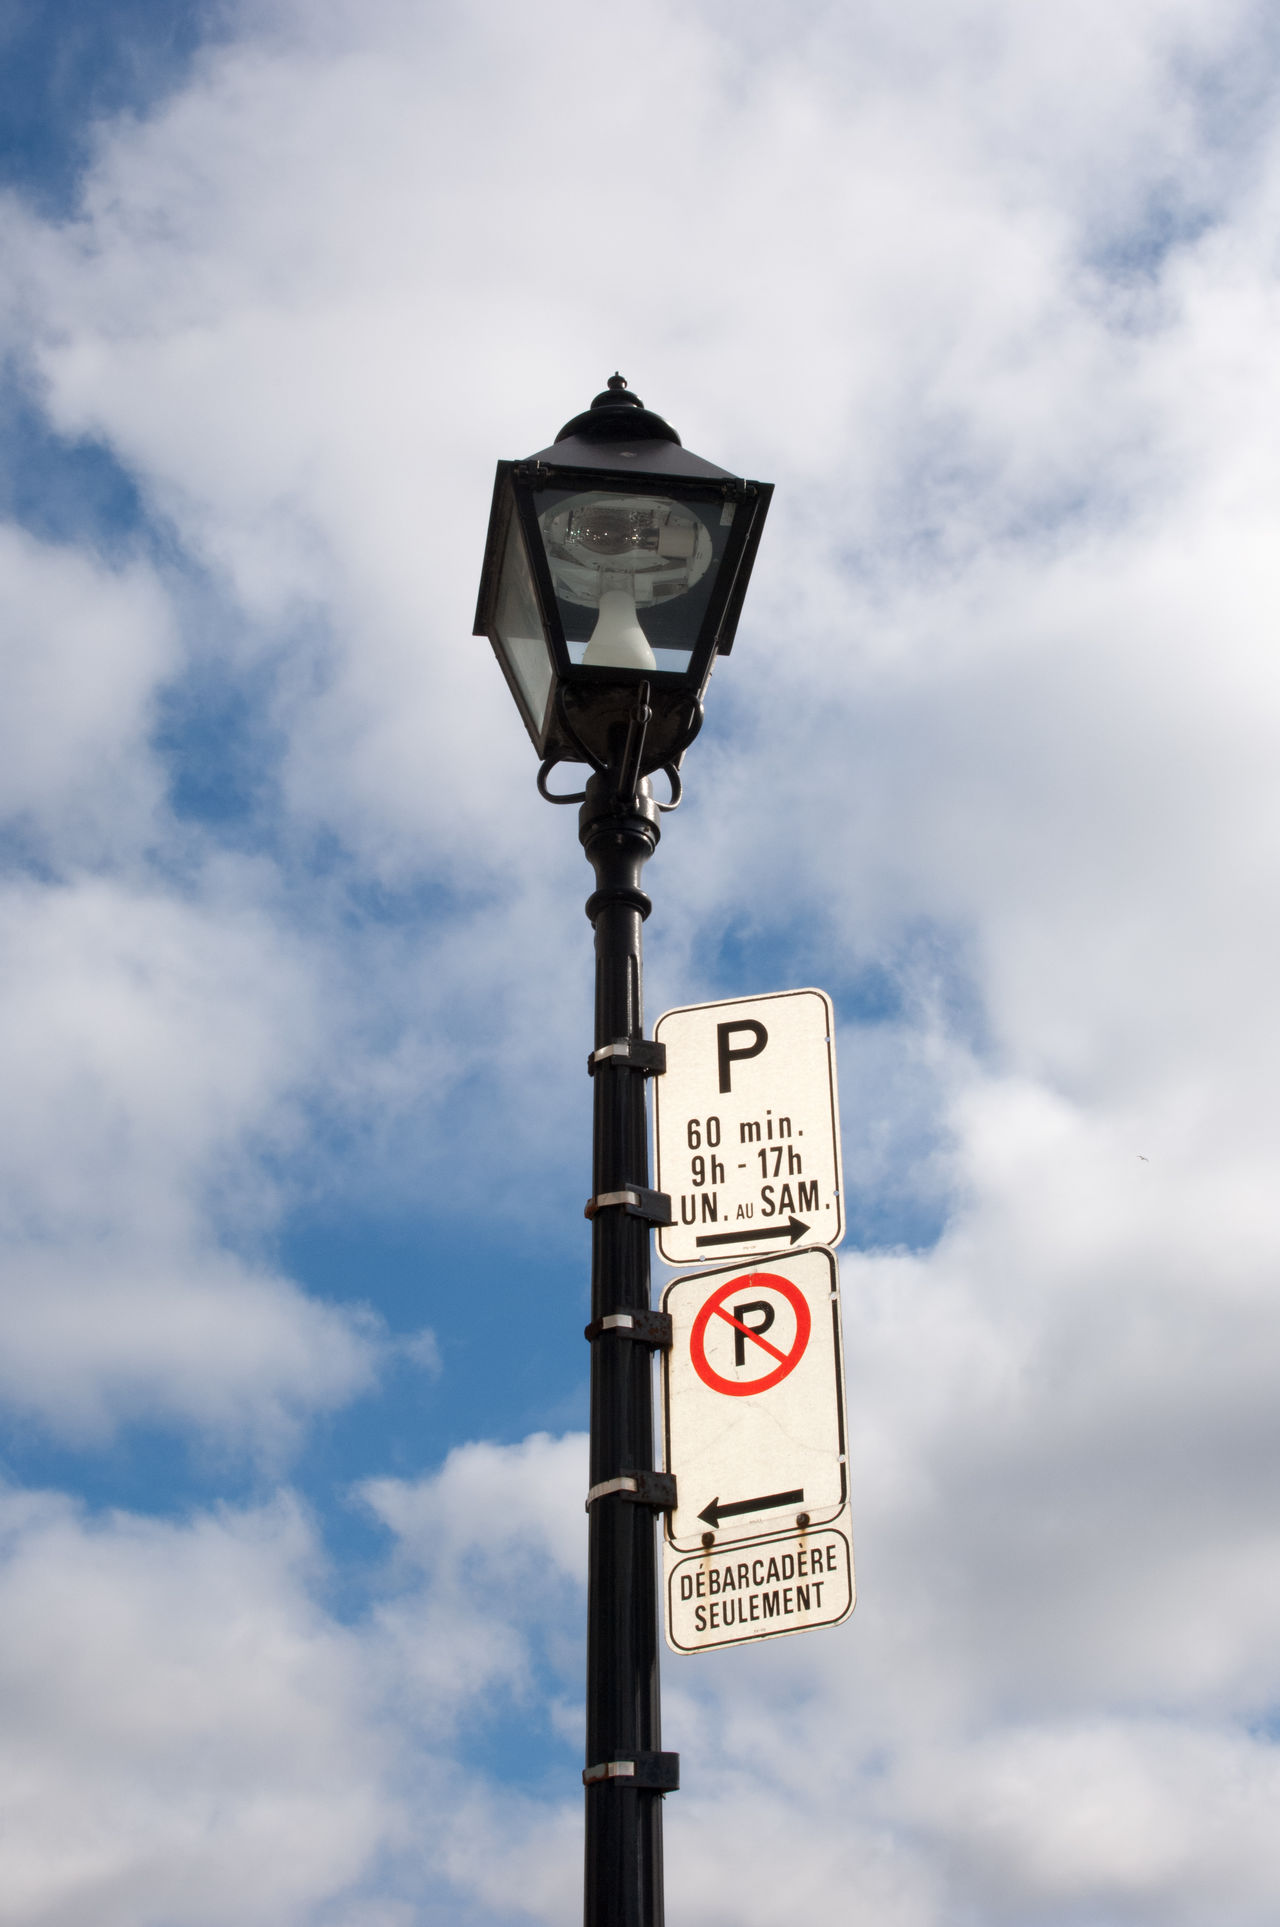 Black lamp post with blue skies and puffy clouds with no parking signs and days, hours of permitted parking times in French. Montreal, Quebec, Canada. Day Lamp Lamp Post Lamplight Lamppost Low Angle View No Parking No Parking Sign No Parking Signs No People Outdoors Sky Text